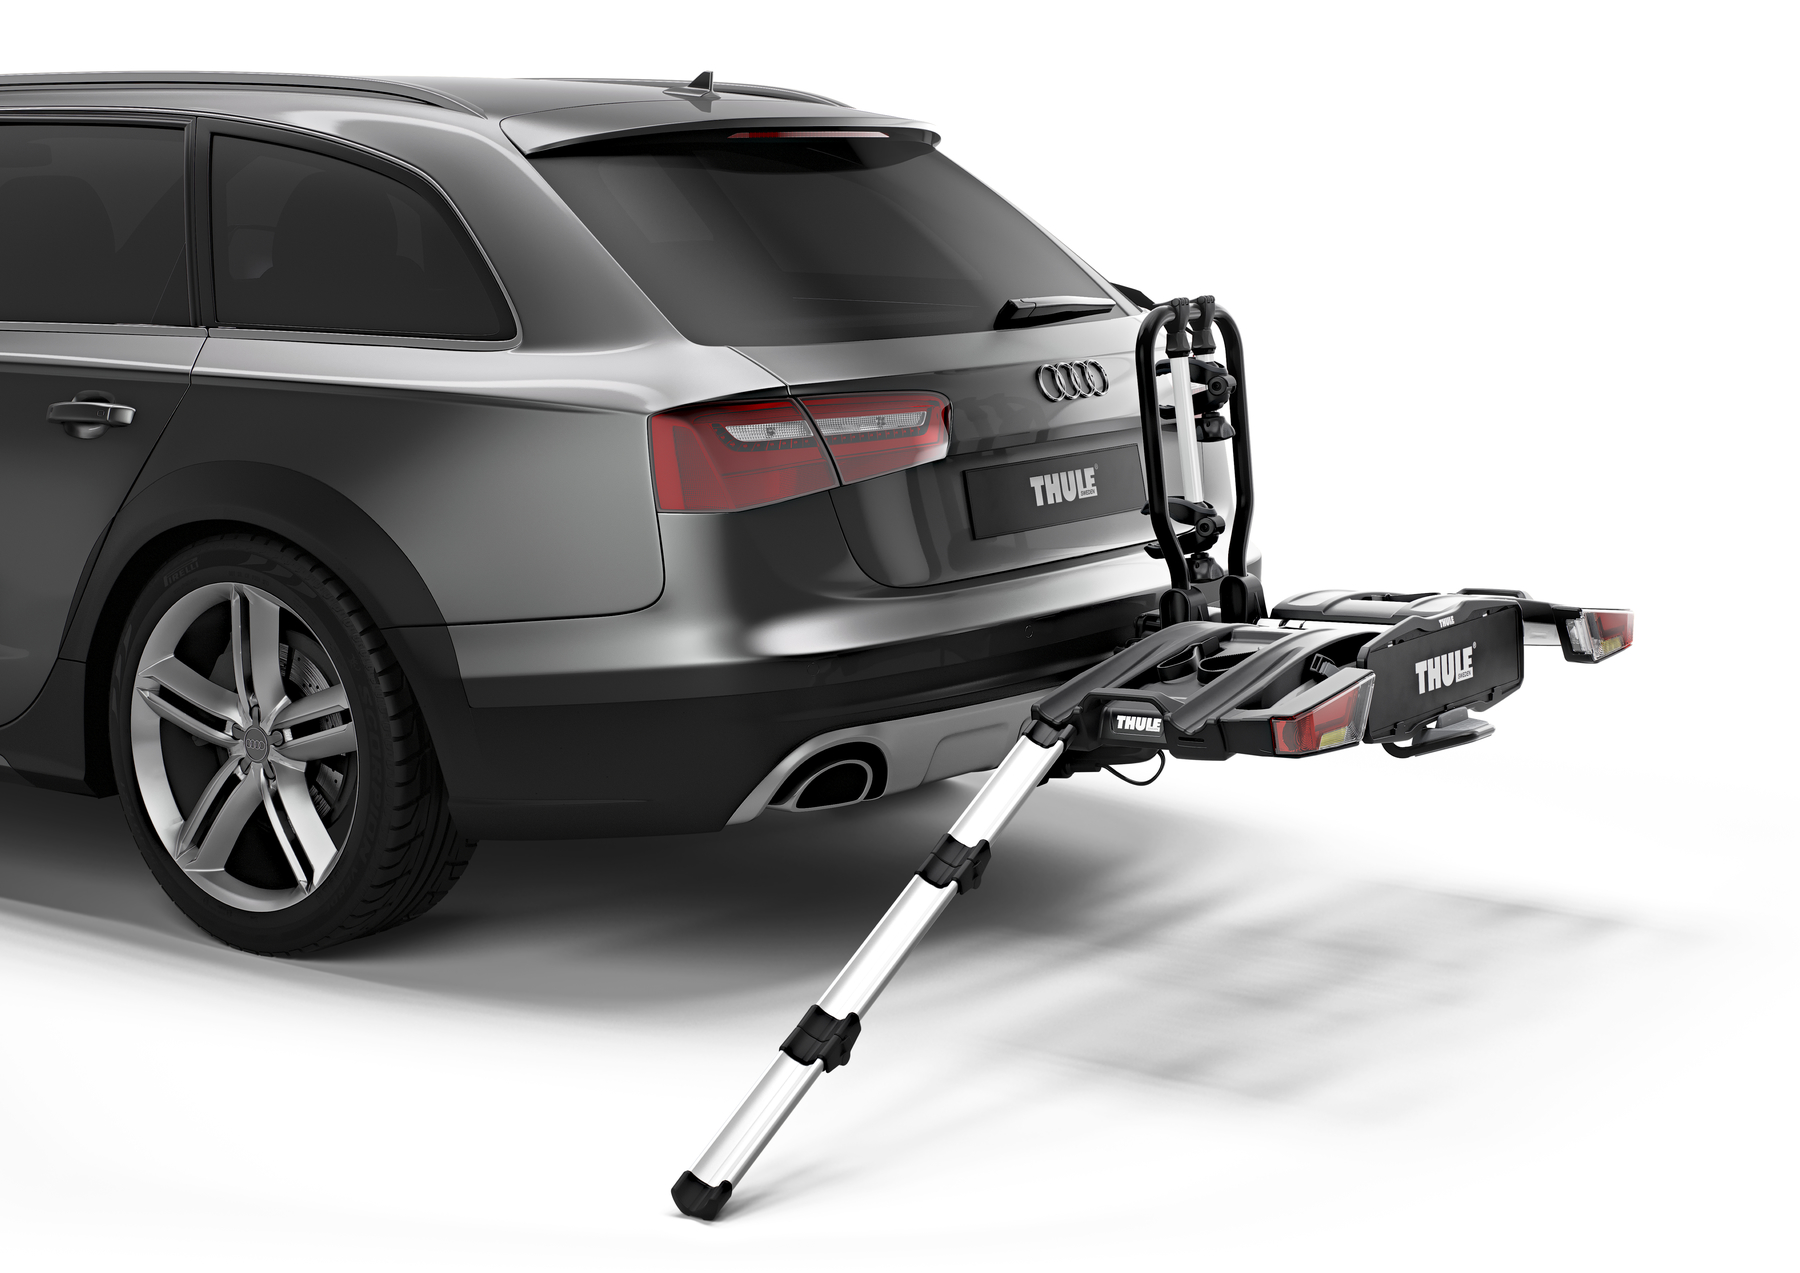 thule easyfold xt 2 bike carrier 933. Black Bedroom Furniture Sets. Home Design Ideas